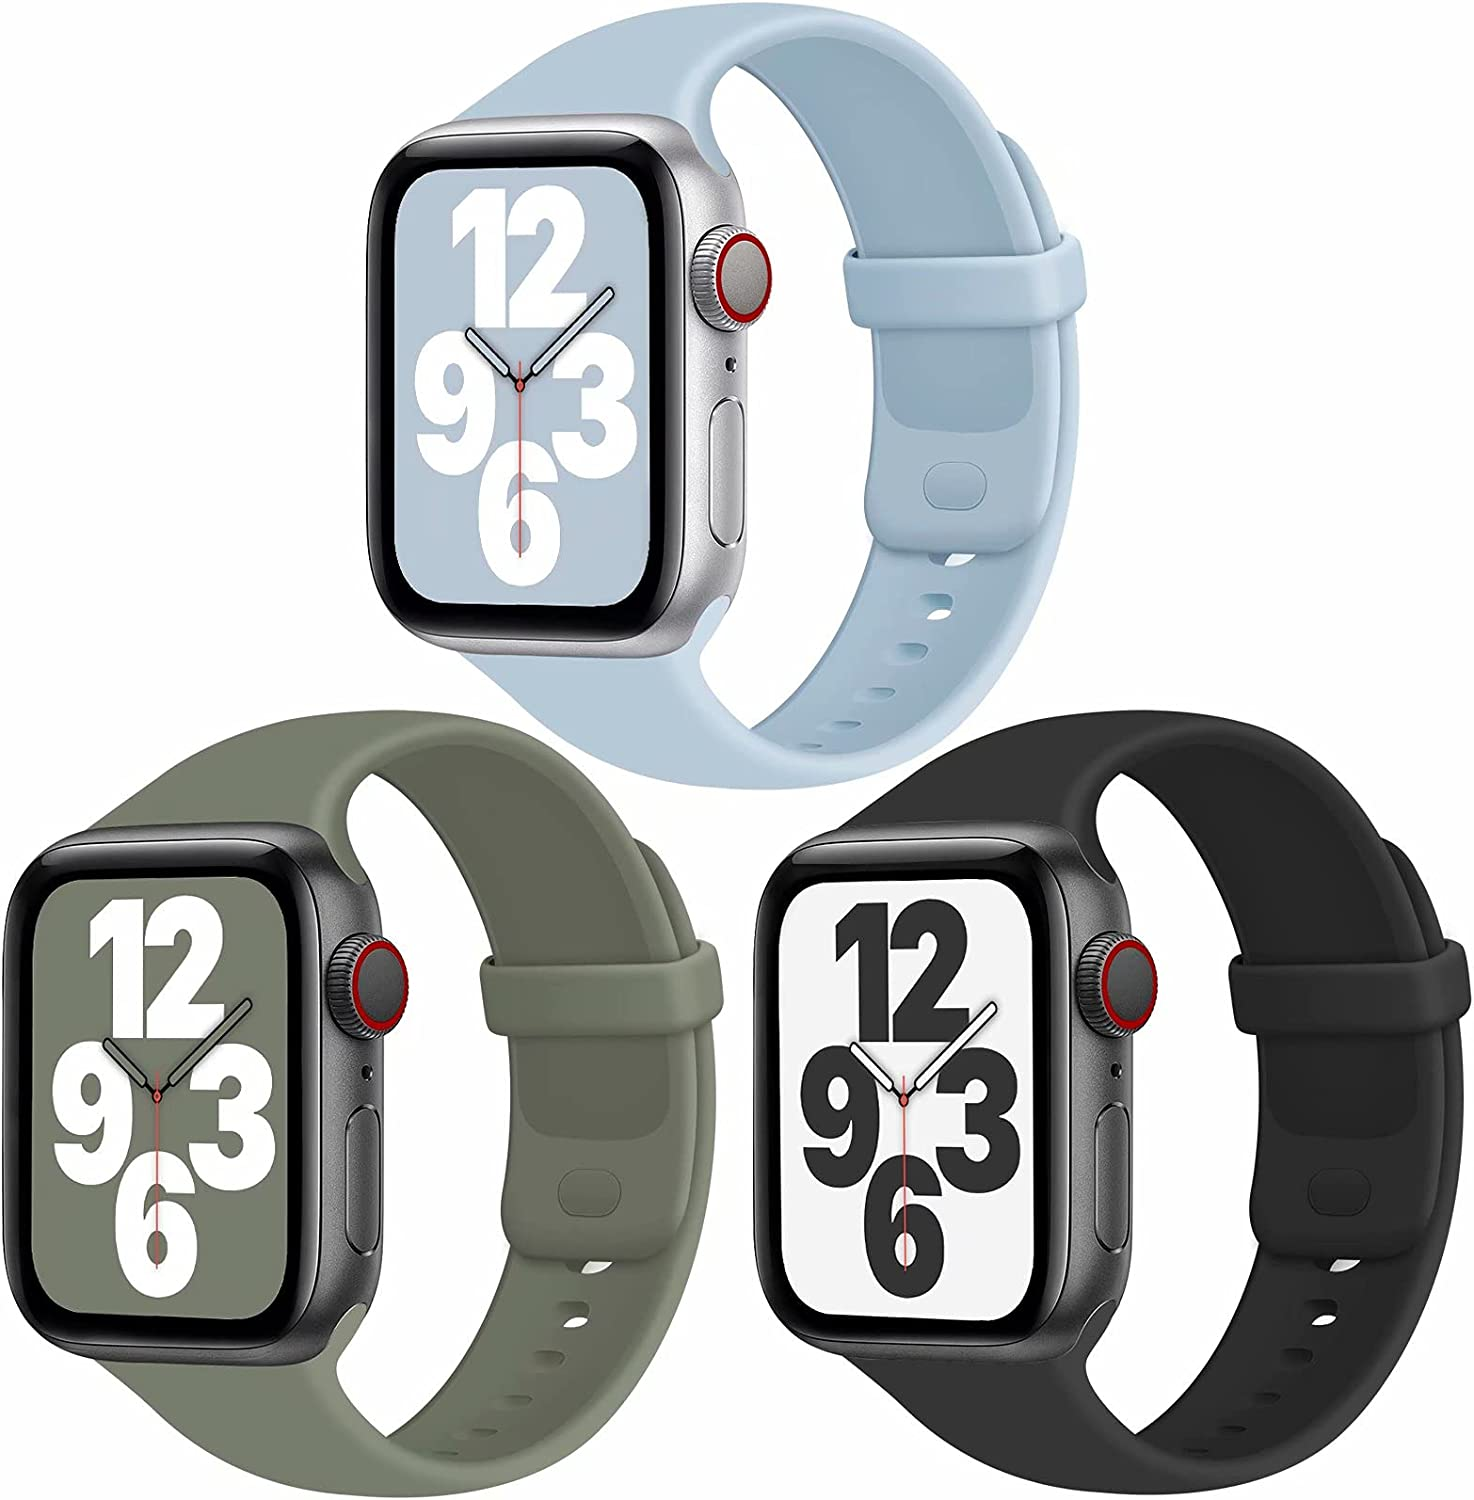 JuQBanke Sport Bands Compatible with Apple Watch Band 38mm 42mm 40mm 44mm, Soft Silicone Sport Band Replacement Strap Compatible with iWatch Series SE 6 5 4 3 2 1 Women Men (H 38mm 40mm)